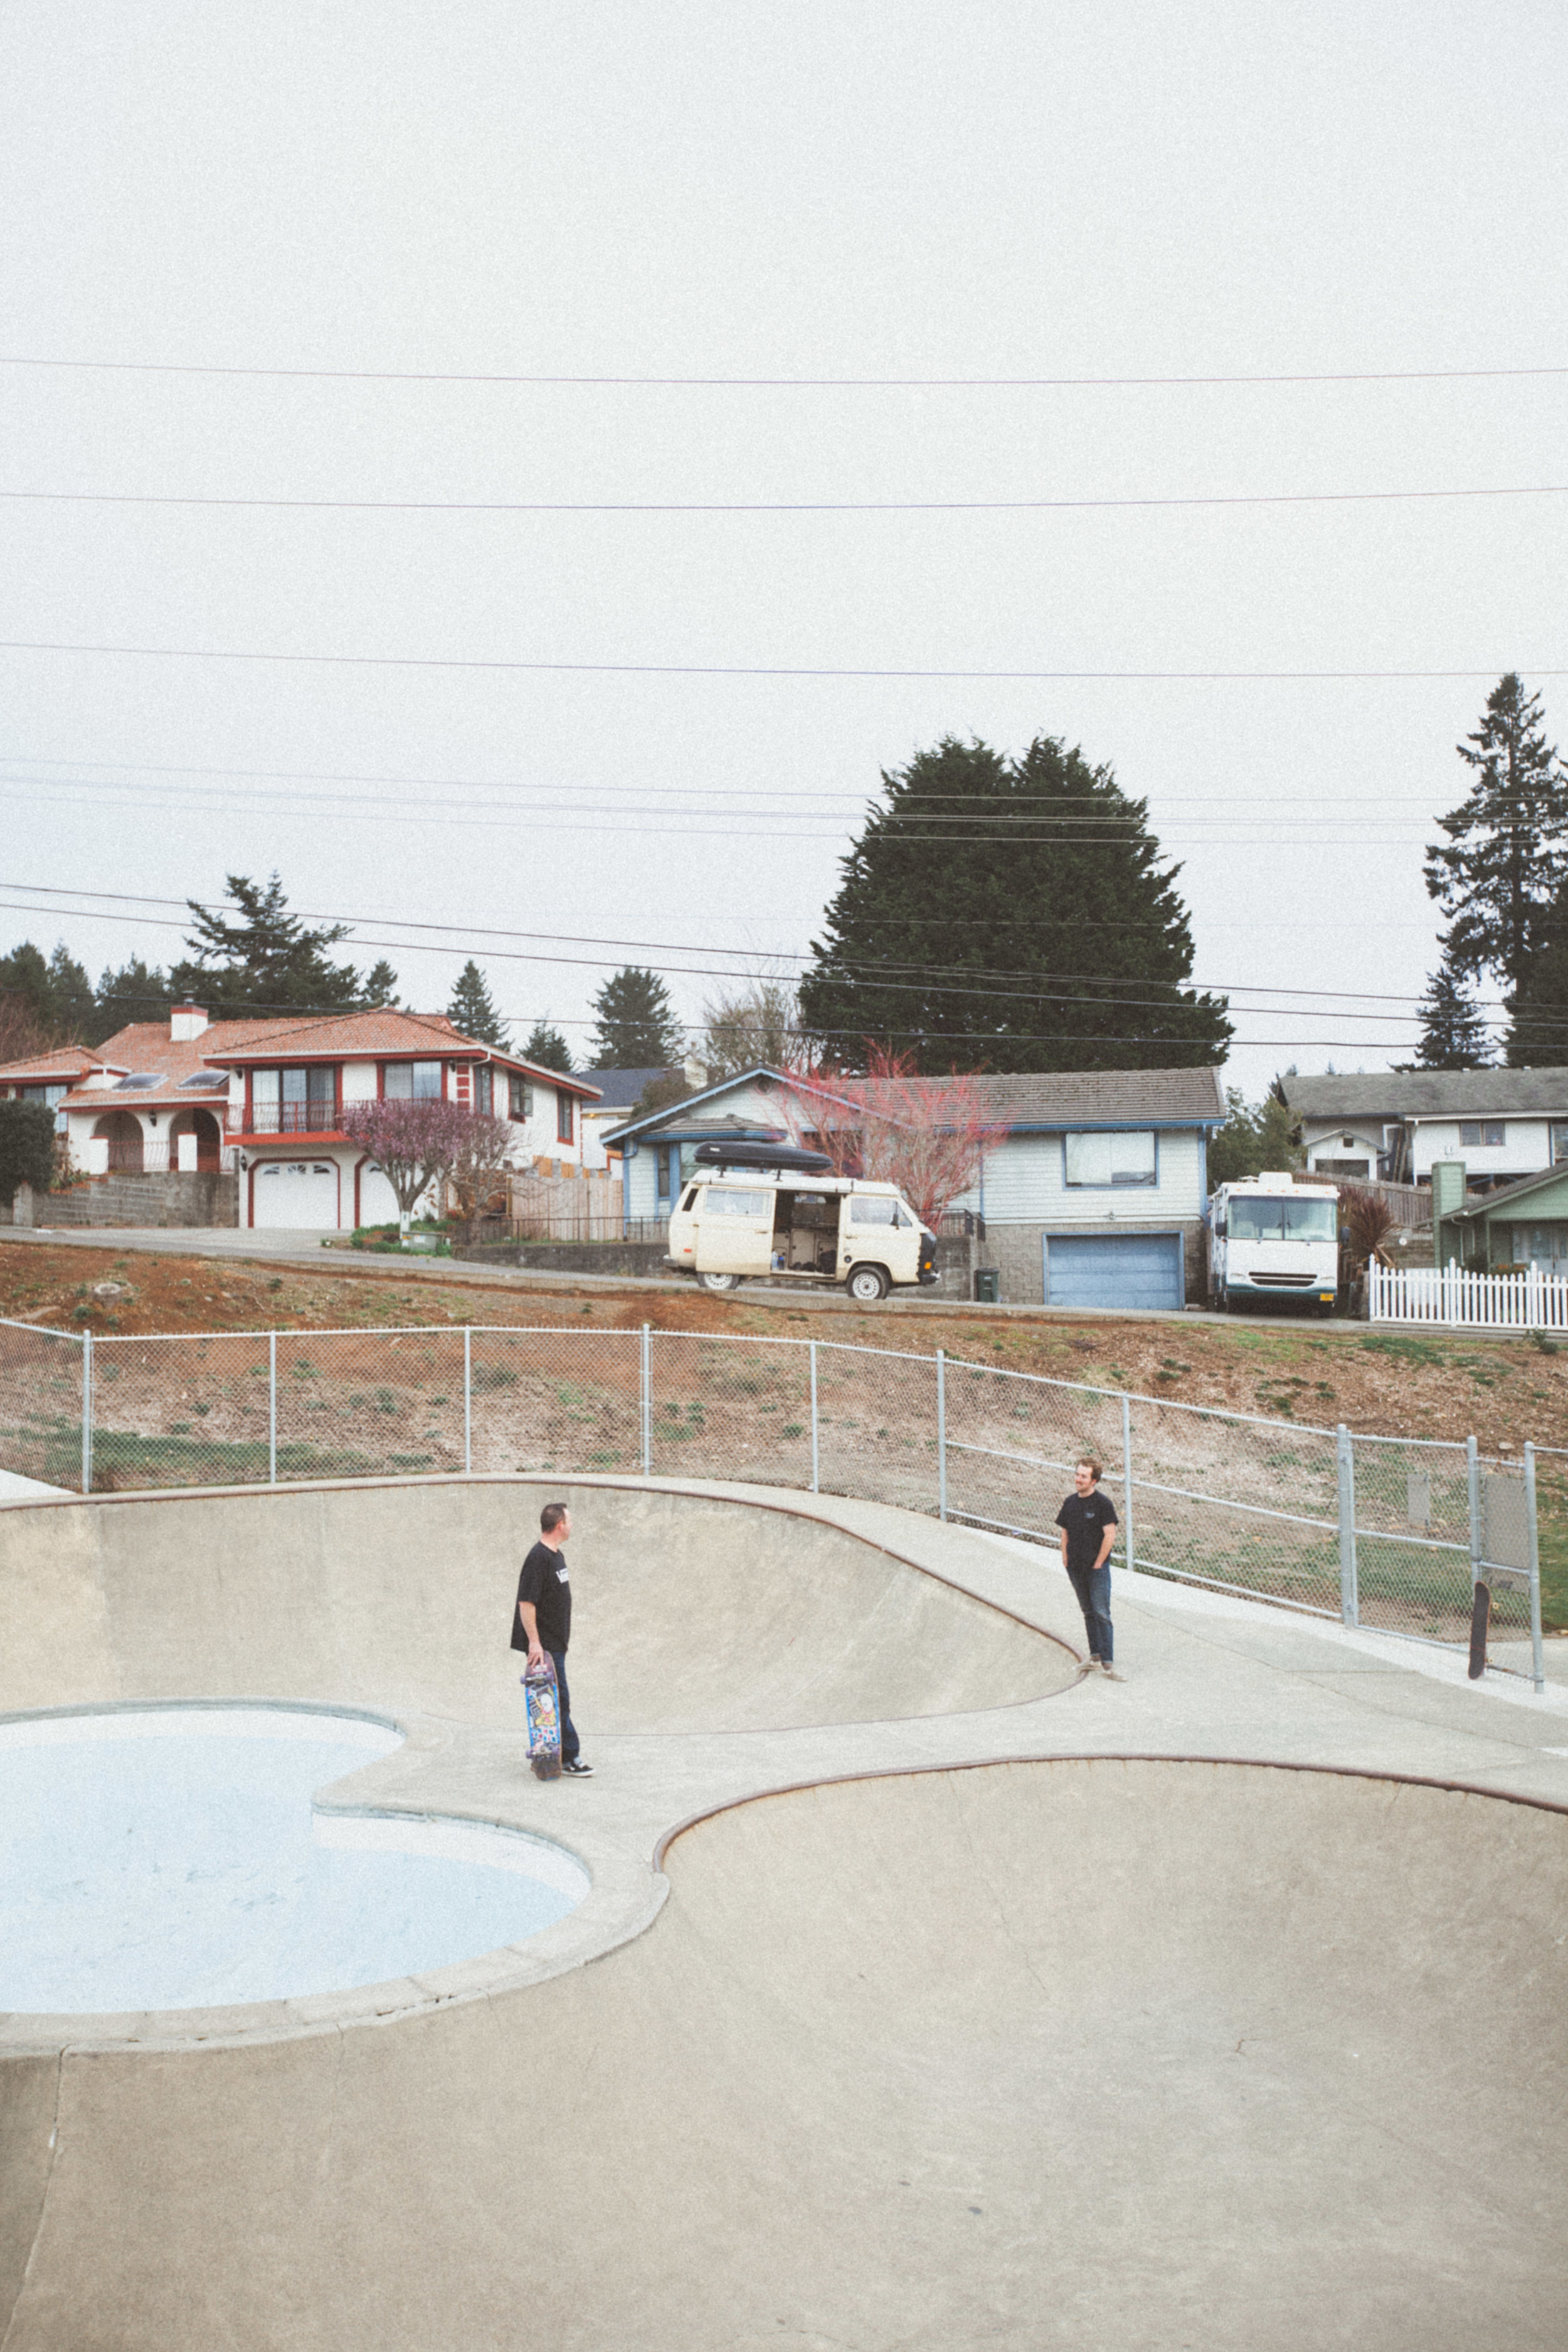 Skateboarding with Locals